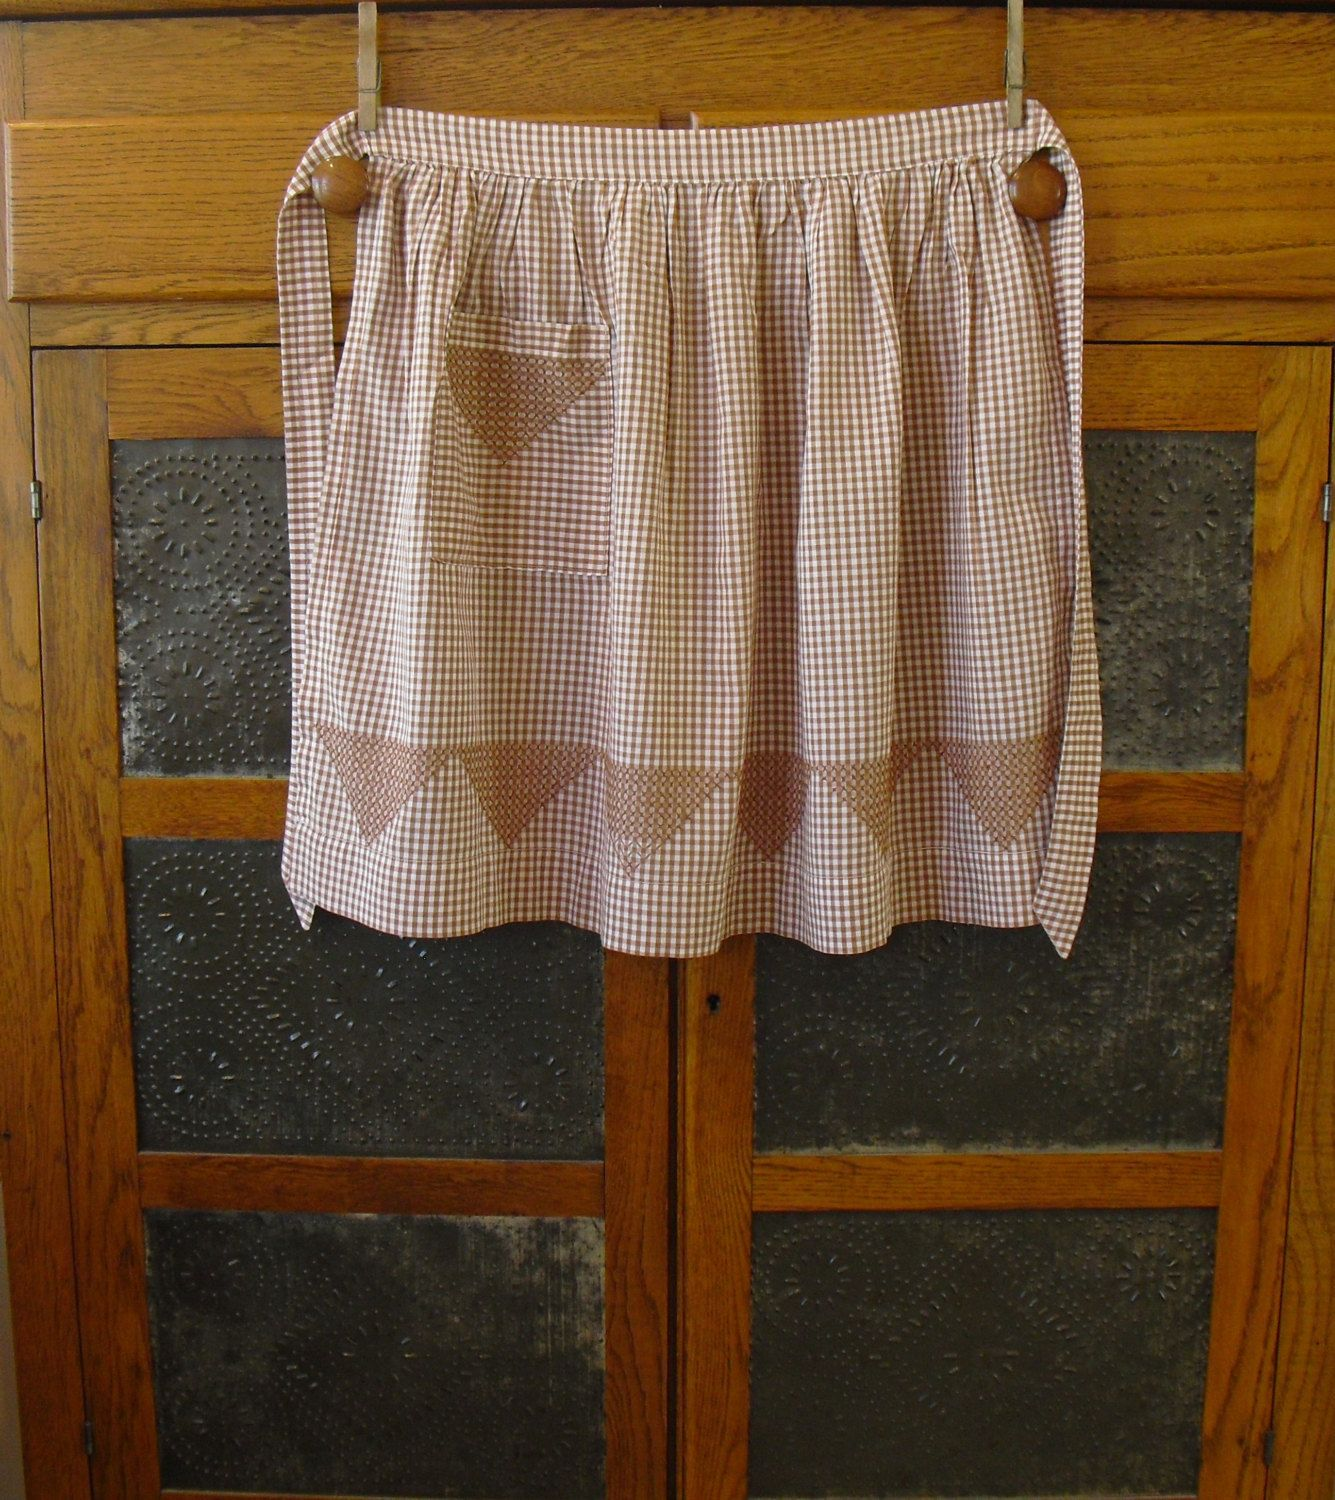 White half apron with pockets - Vintage Brown And White Gingham Half Apron One Pocket Flat Waist Pointed Sash